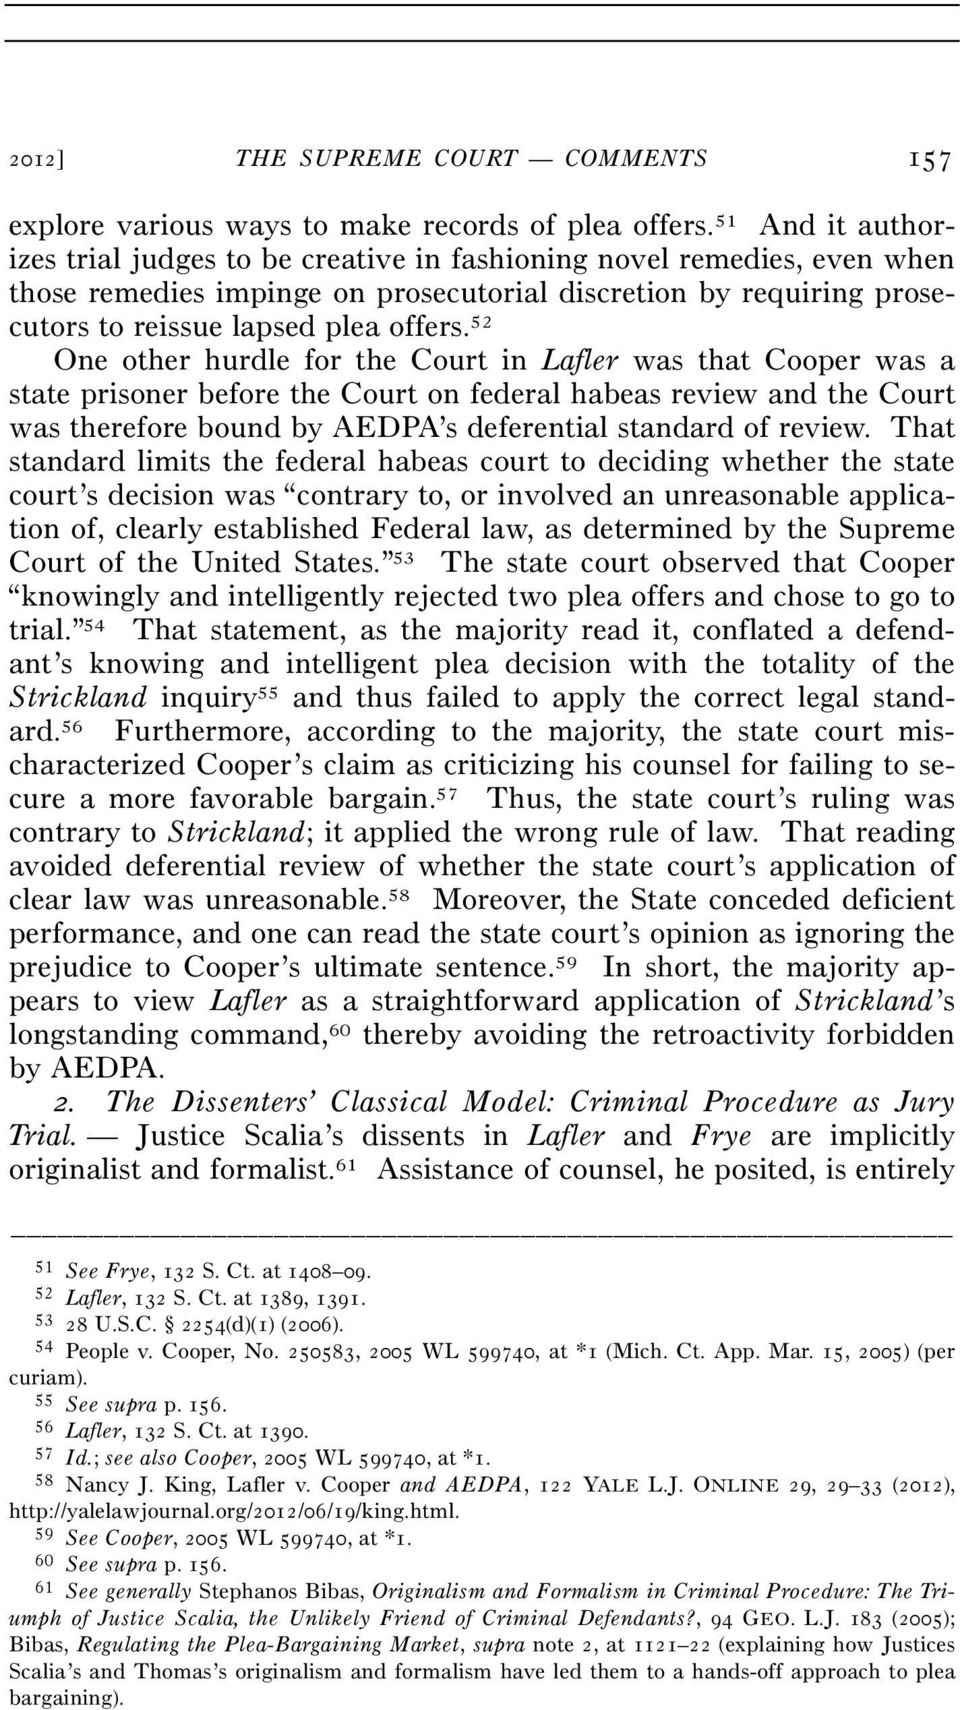 52 One other hurdle for the Court in Lafler was that Cooper was a state prisoner before the Court on federal habeas review and the Court was therefore bound by AEDPA s deferential standard of review.